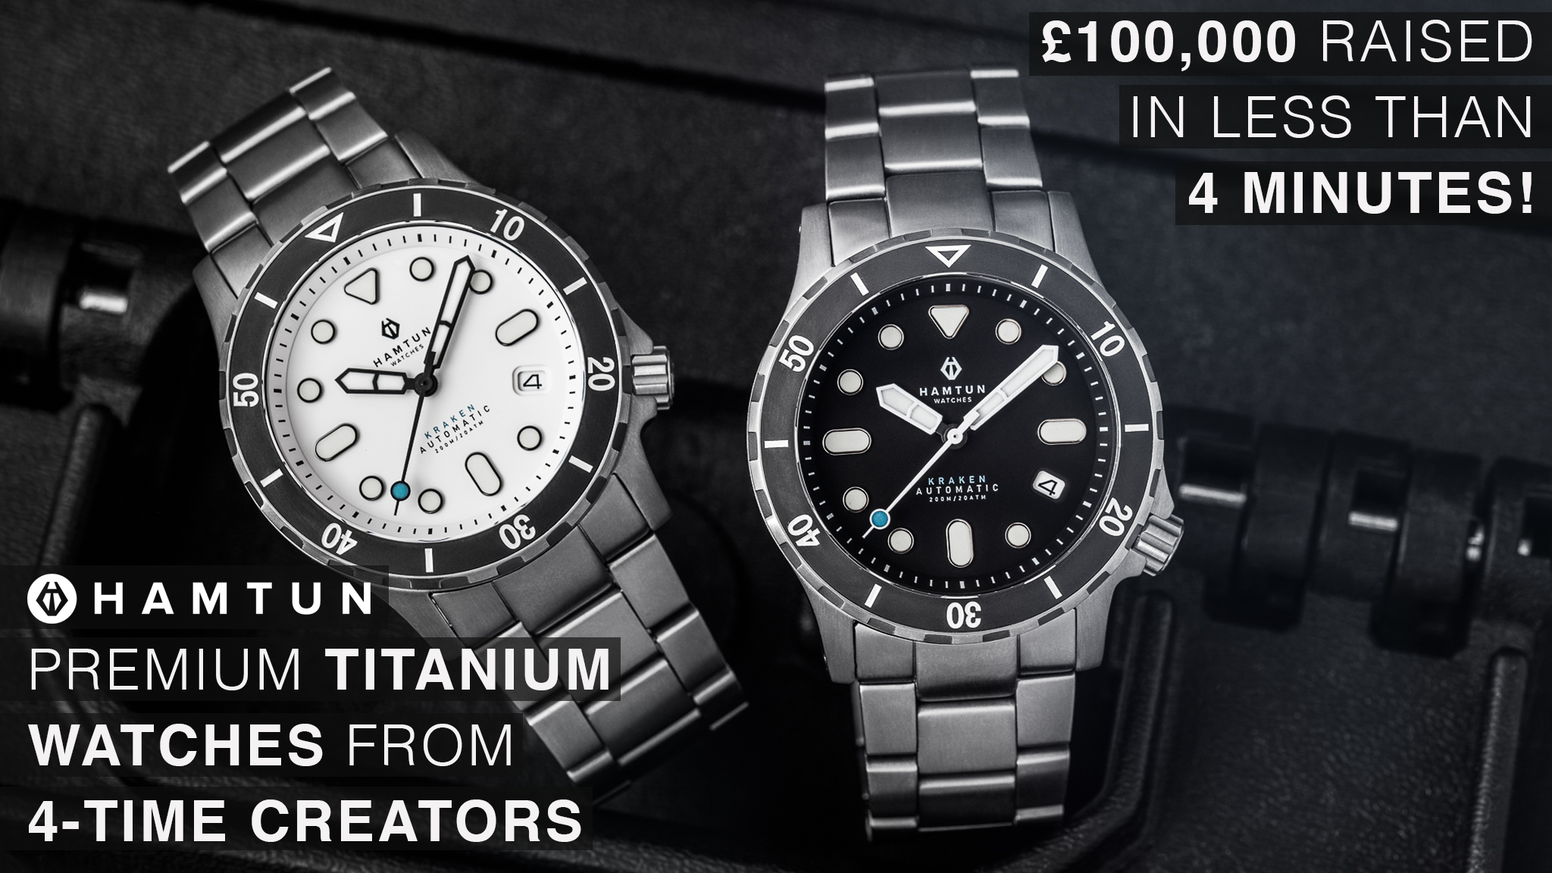 High-end, scratch-resistant automatic dive watches at incredible prices. Hamtun's 4th watch is designed to impress & built to last.